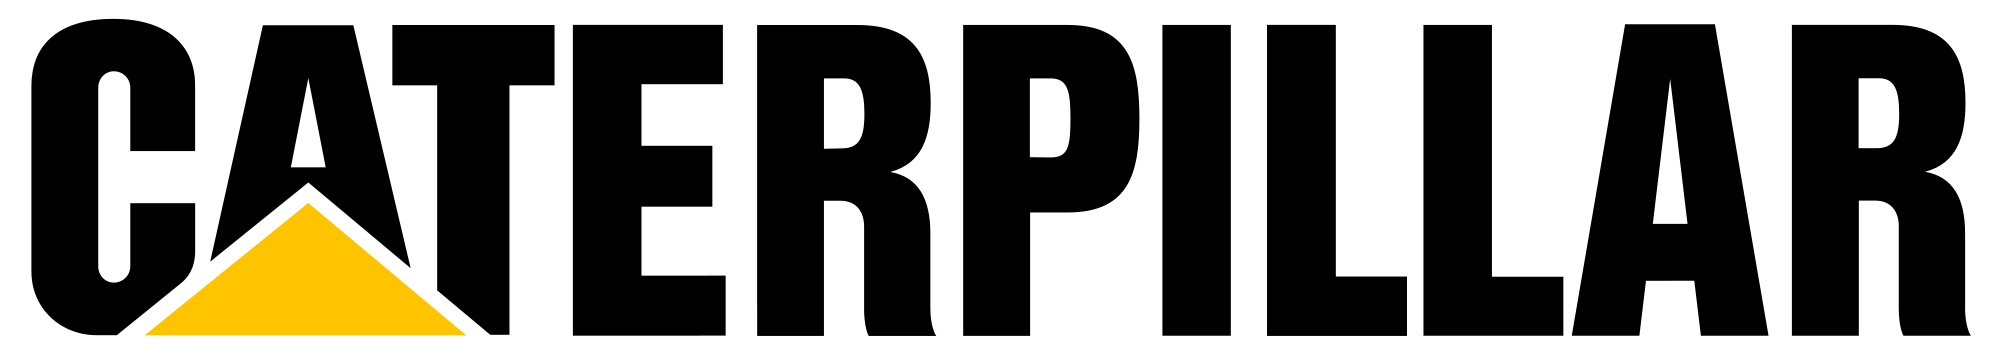 caterpillar black png logo